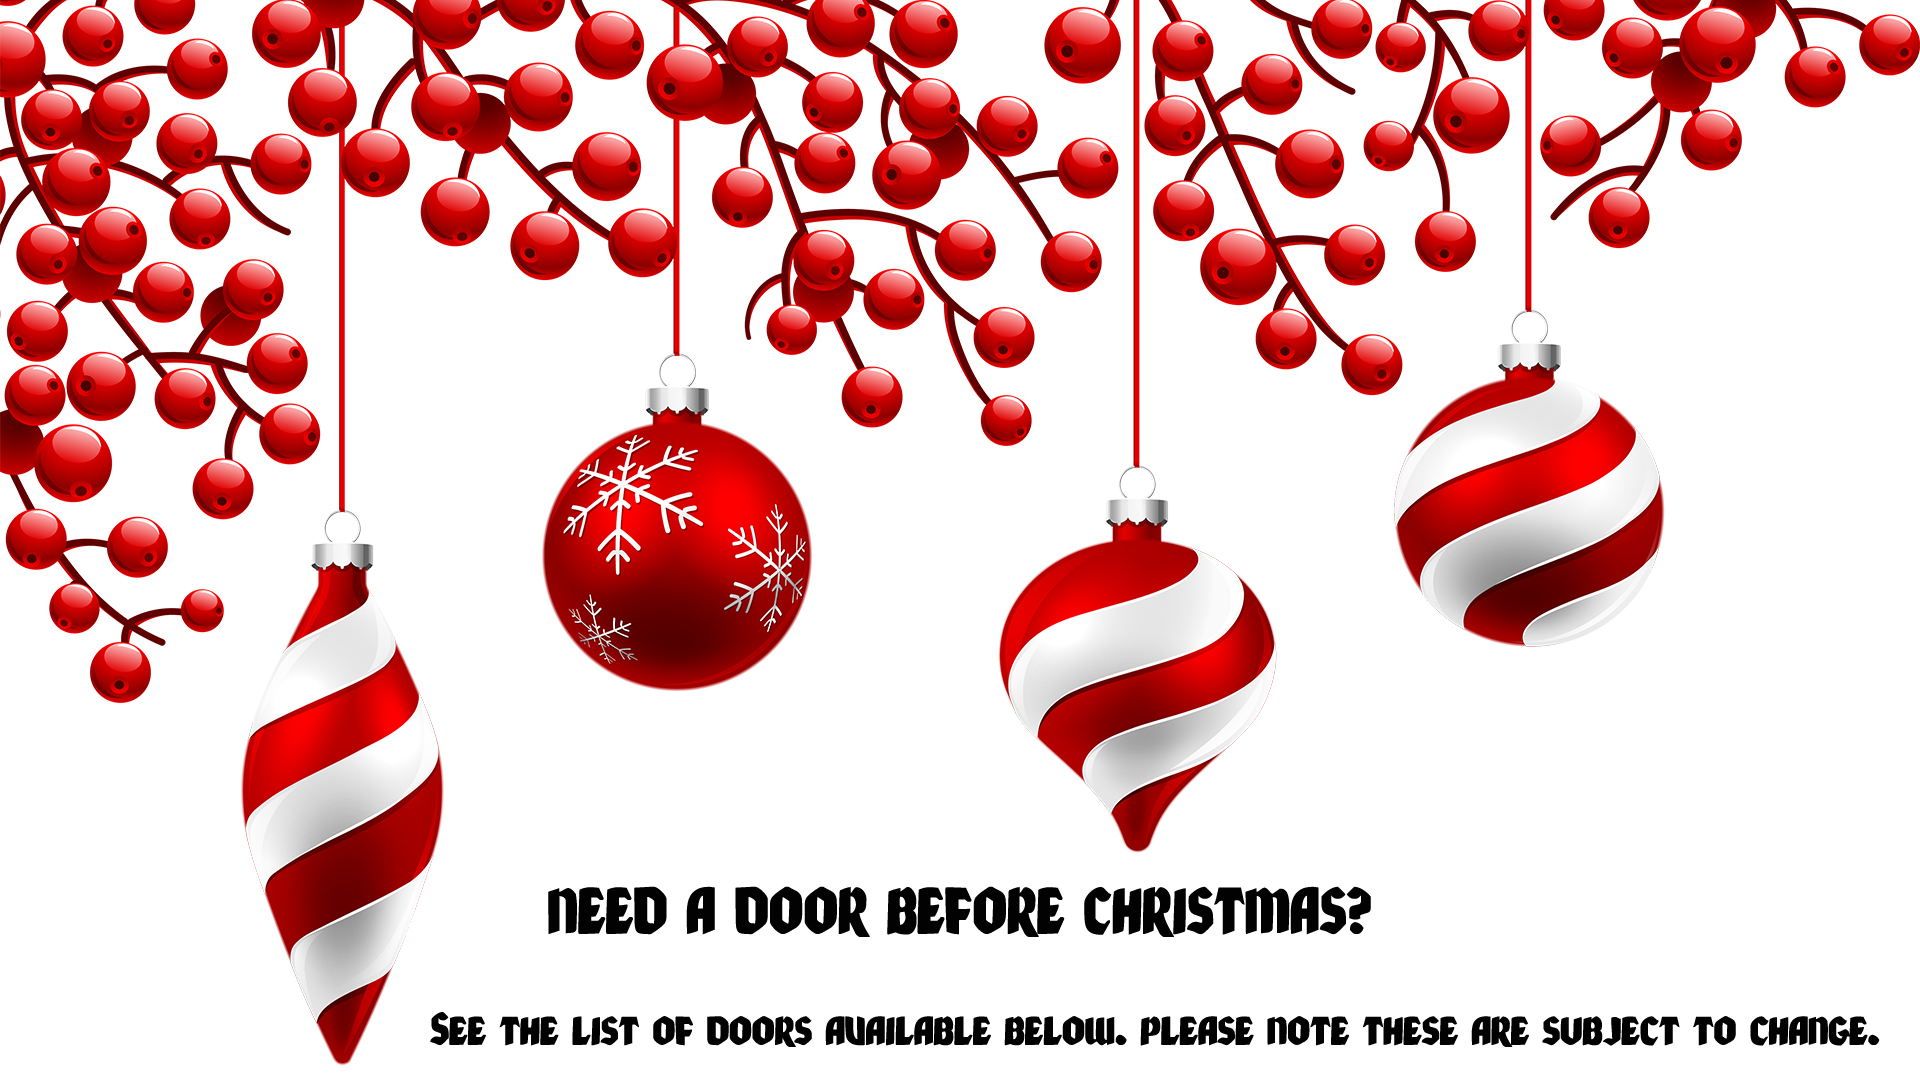 Need a door before Christmas?